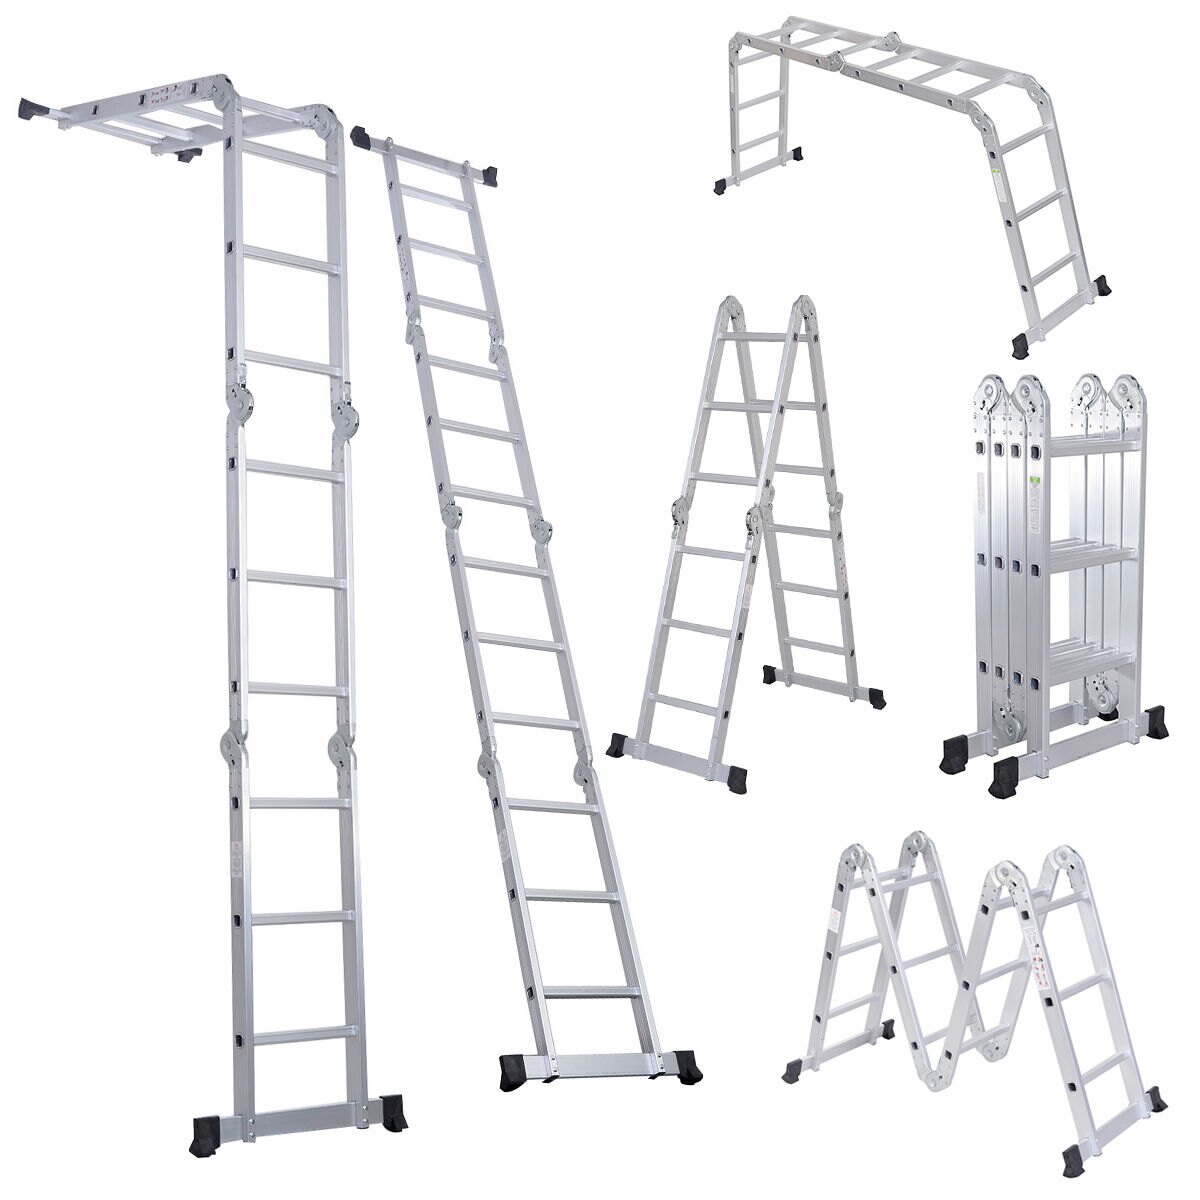 Costway 12.5-ft. Multi Purpose Aluminum Folding Scaffold Ladder